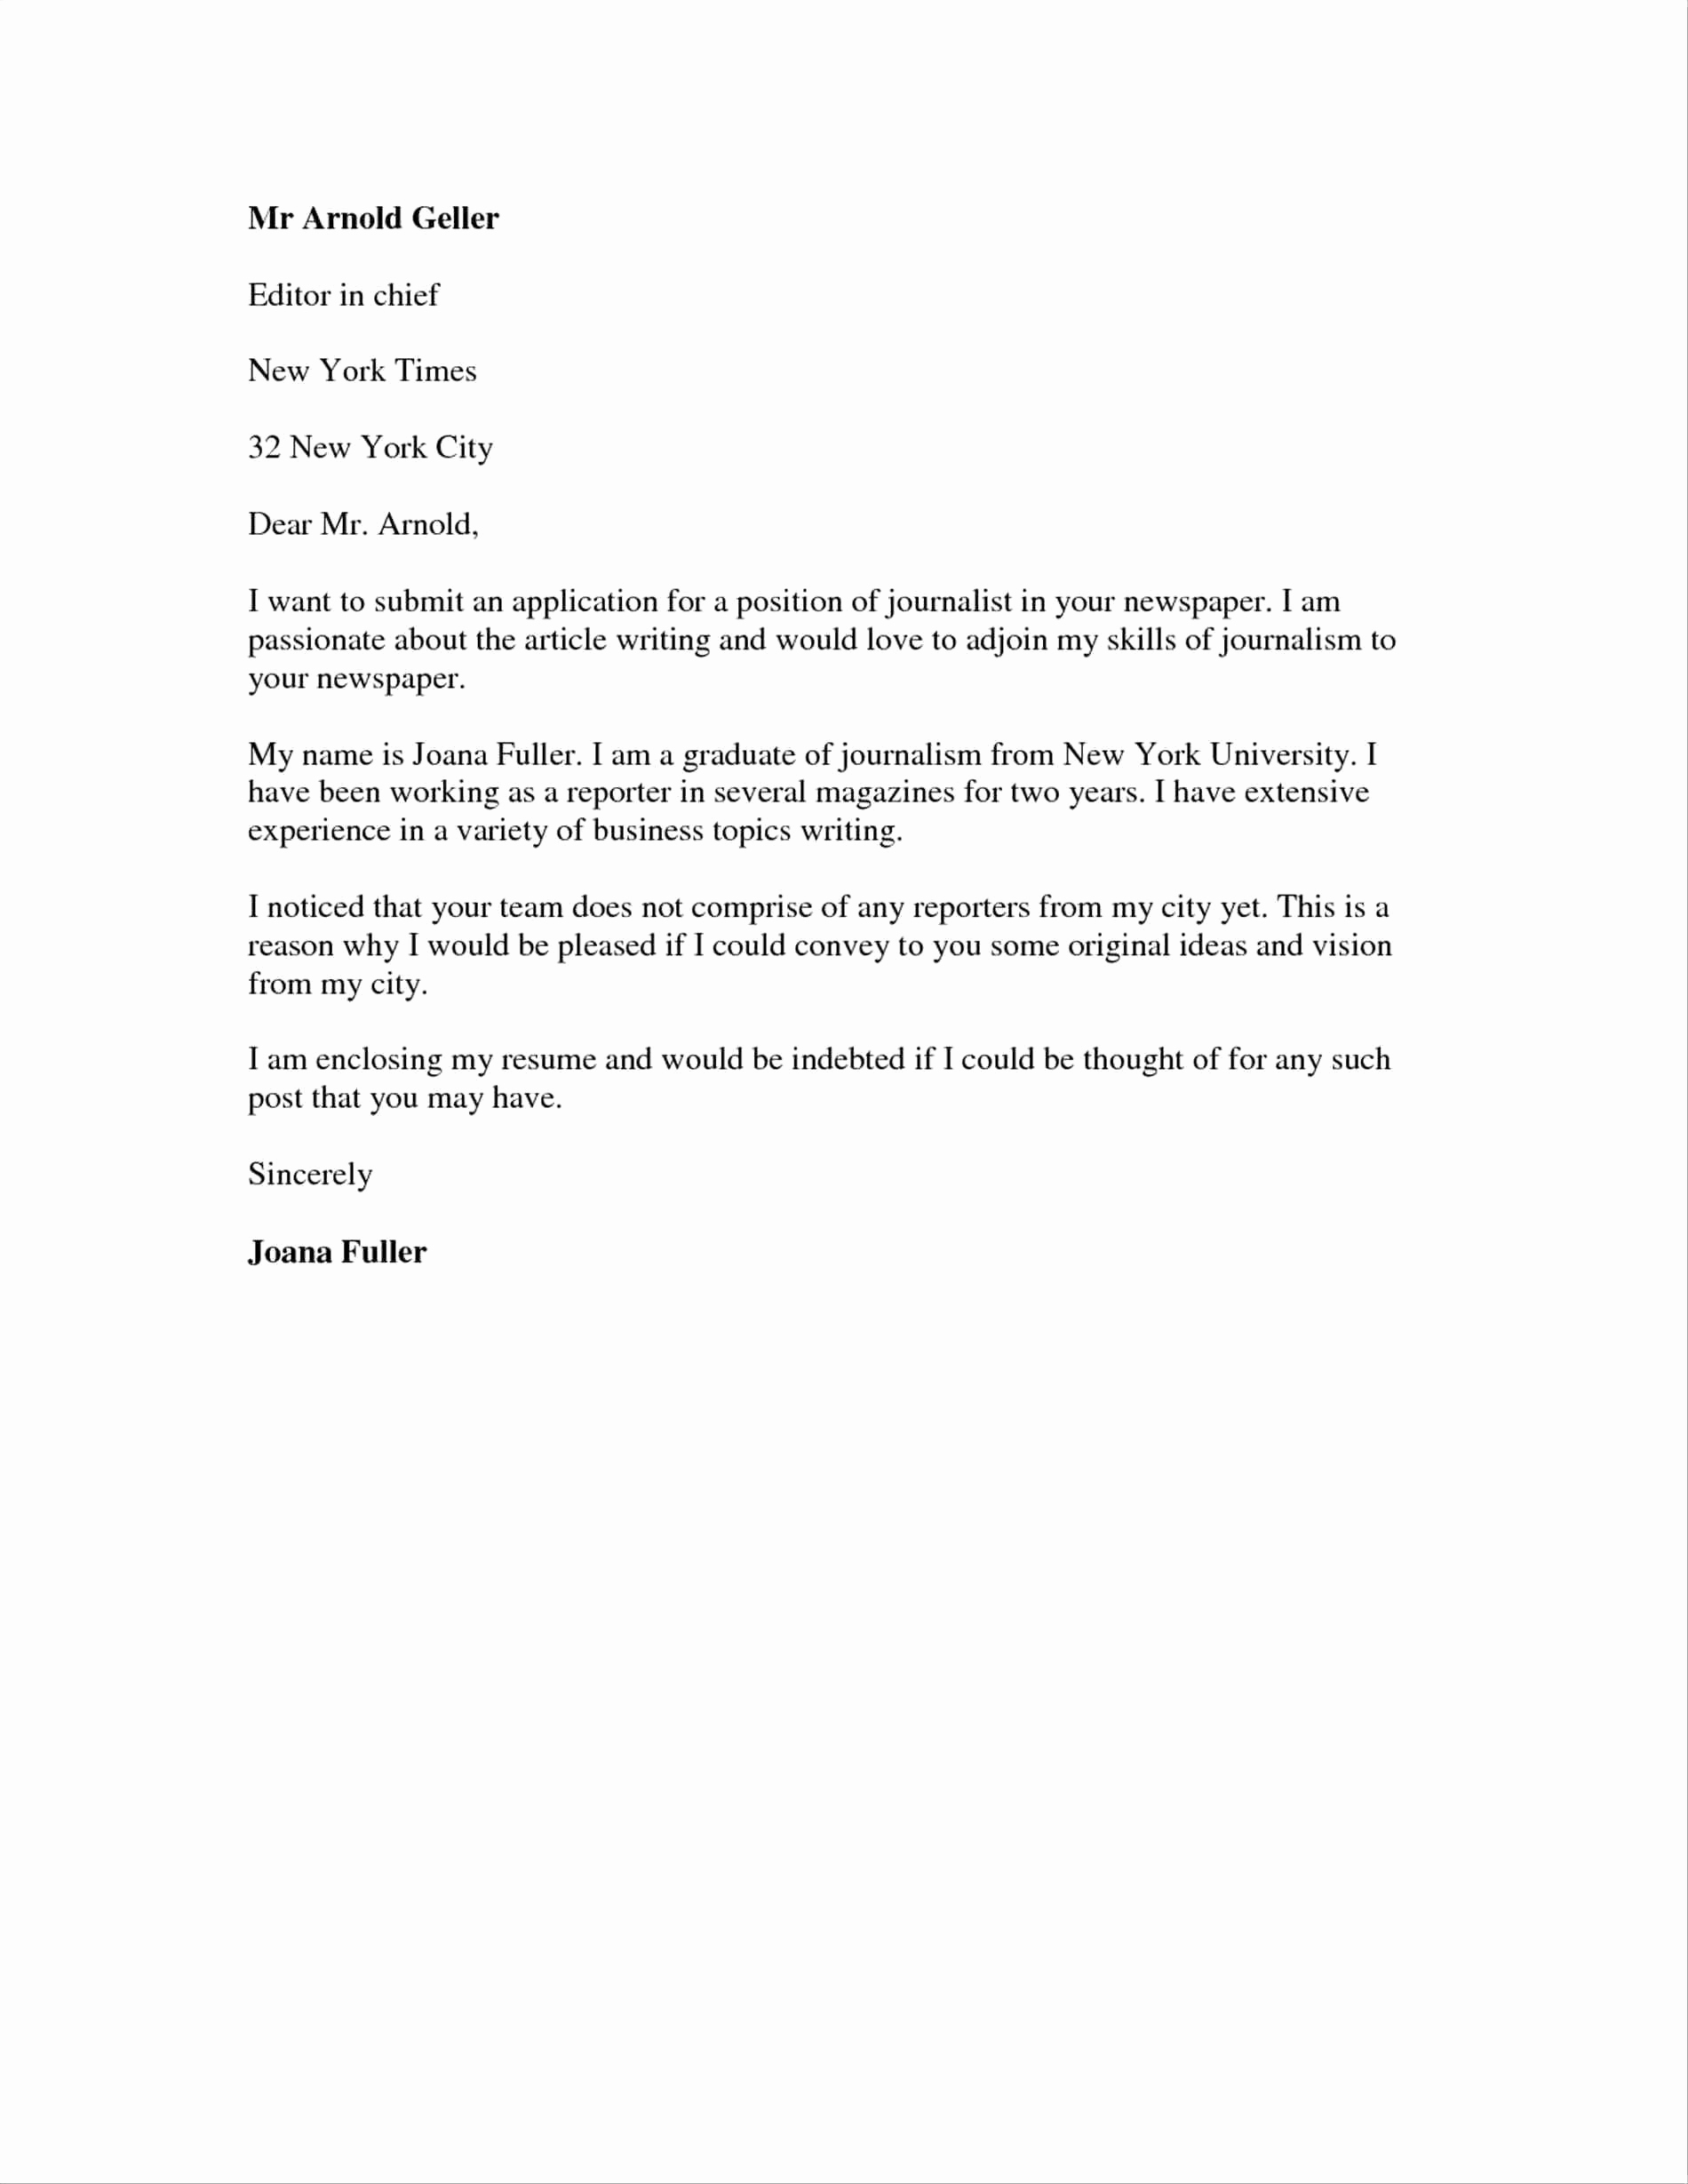 Dispute Letter Template - Job Letter Template Awesome Credit Report Dispute Letter Template